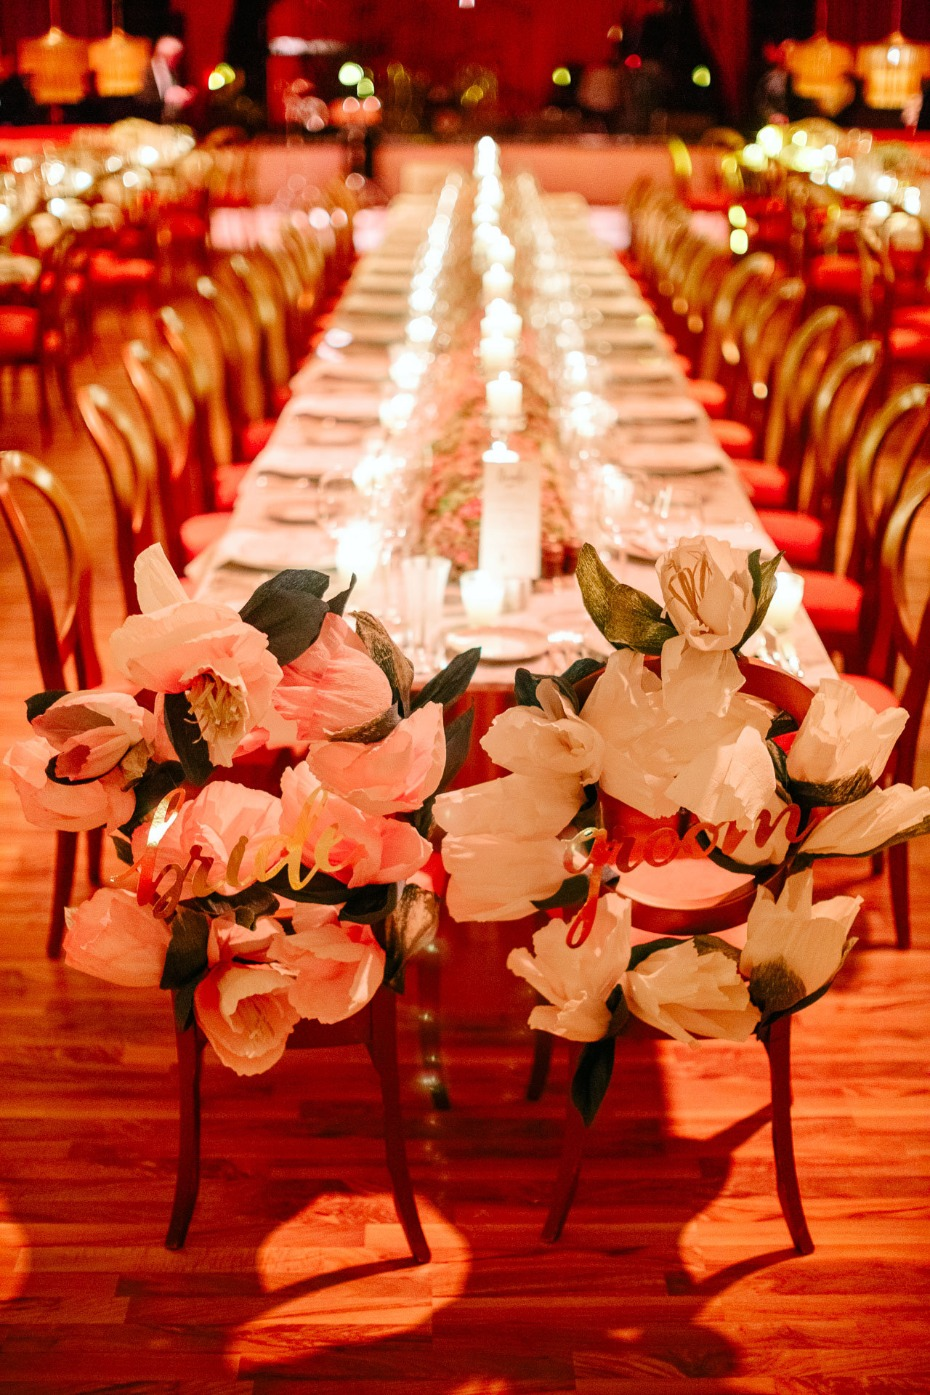 bride and groom wedding seats with giant paper flowers